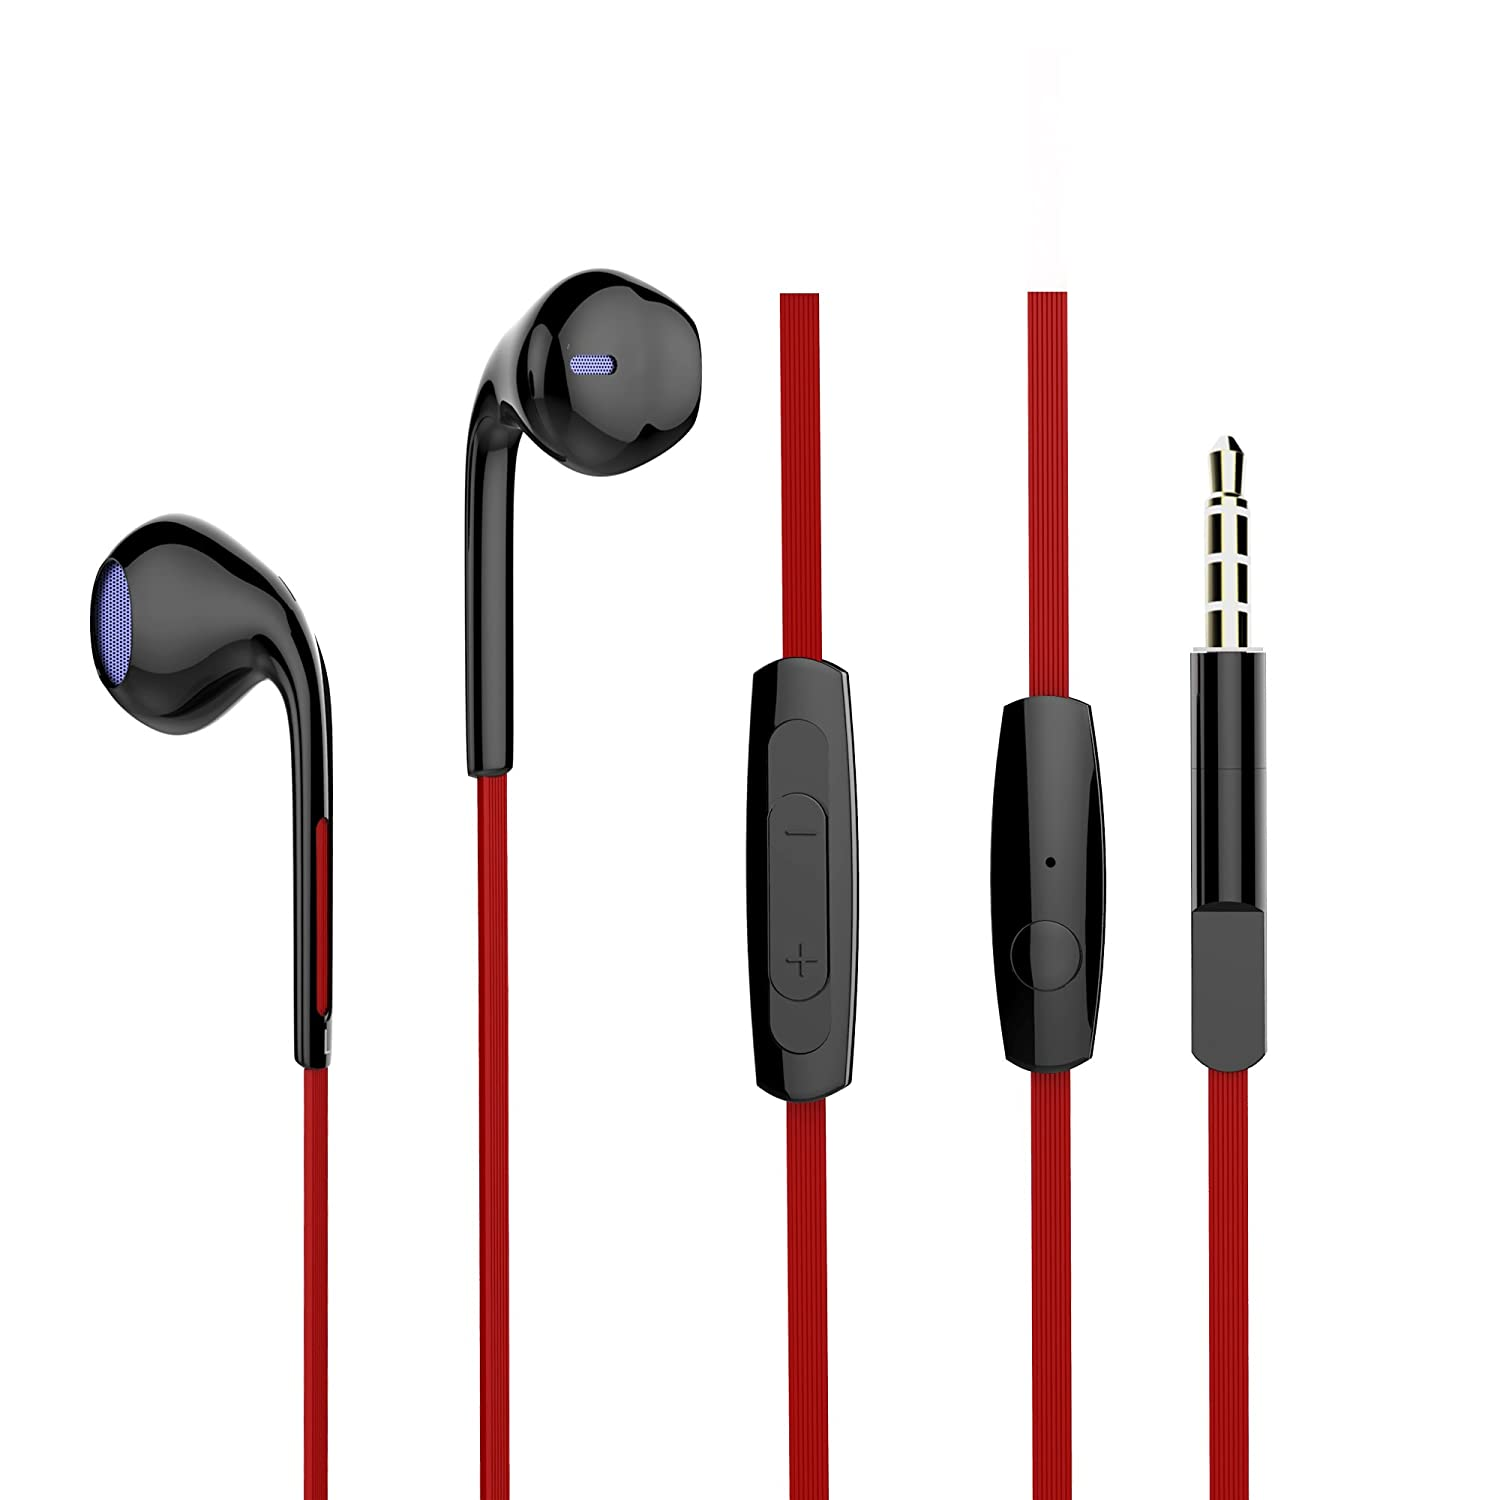 Vomercy Headphones In-Ear Earbuds with Microphone Stereo Wired iPhone Earphones